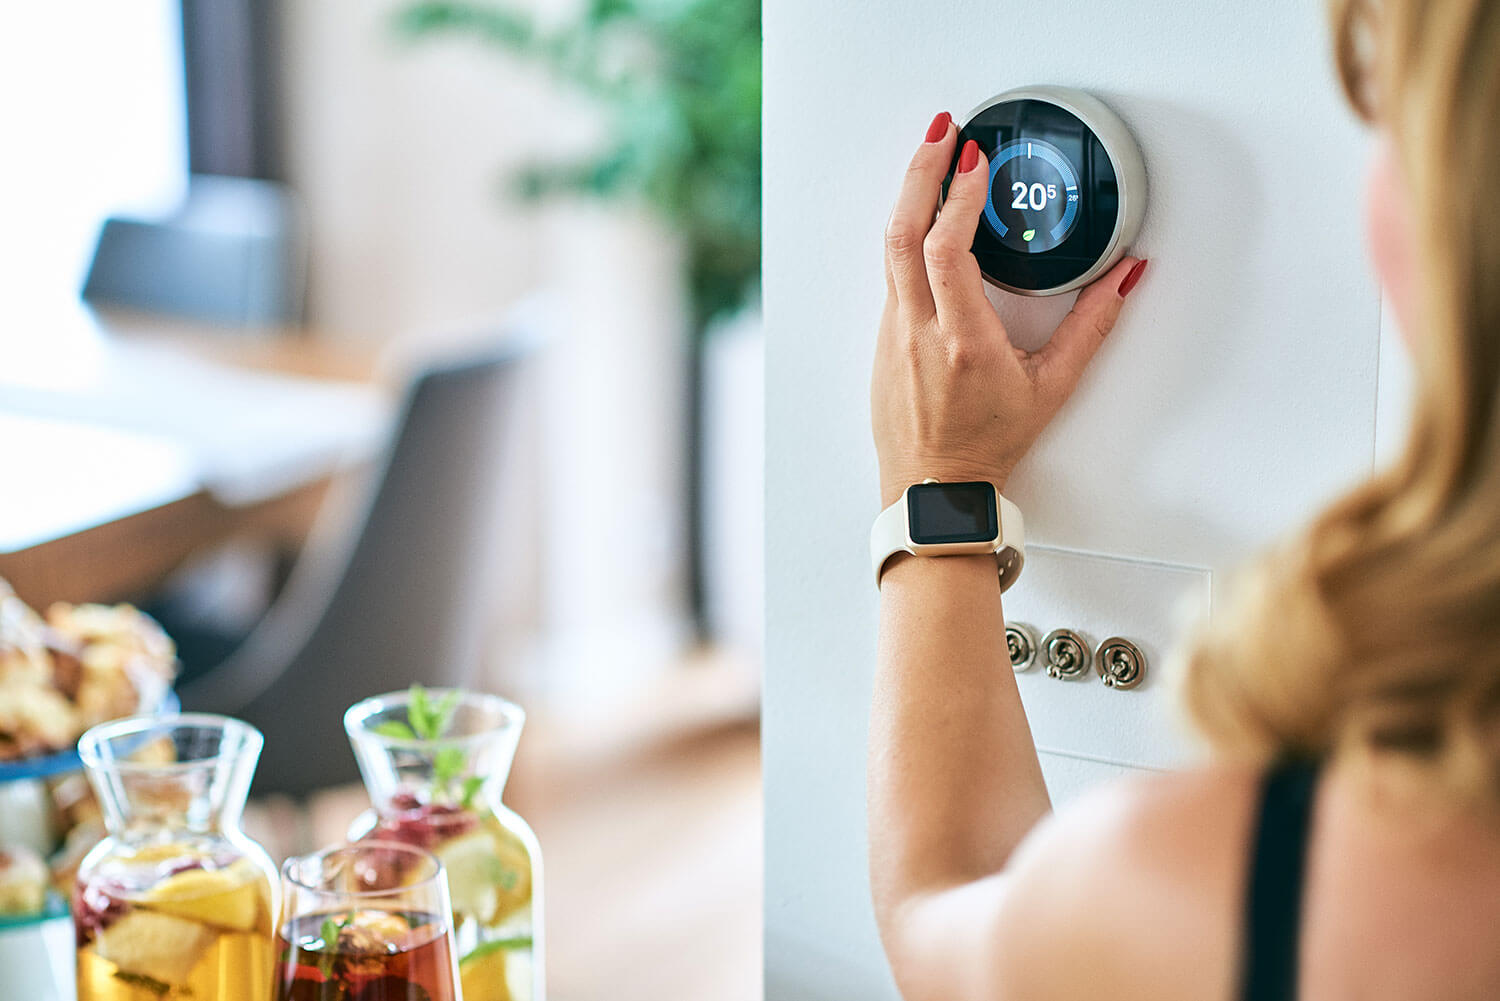 Eco-Friendly Smart Thermostats